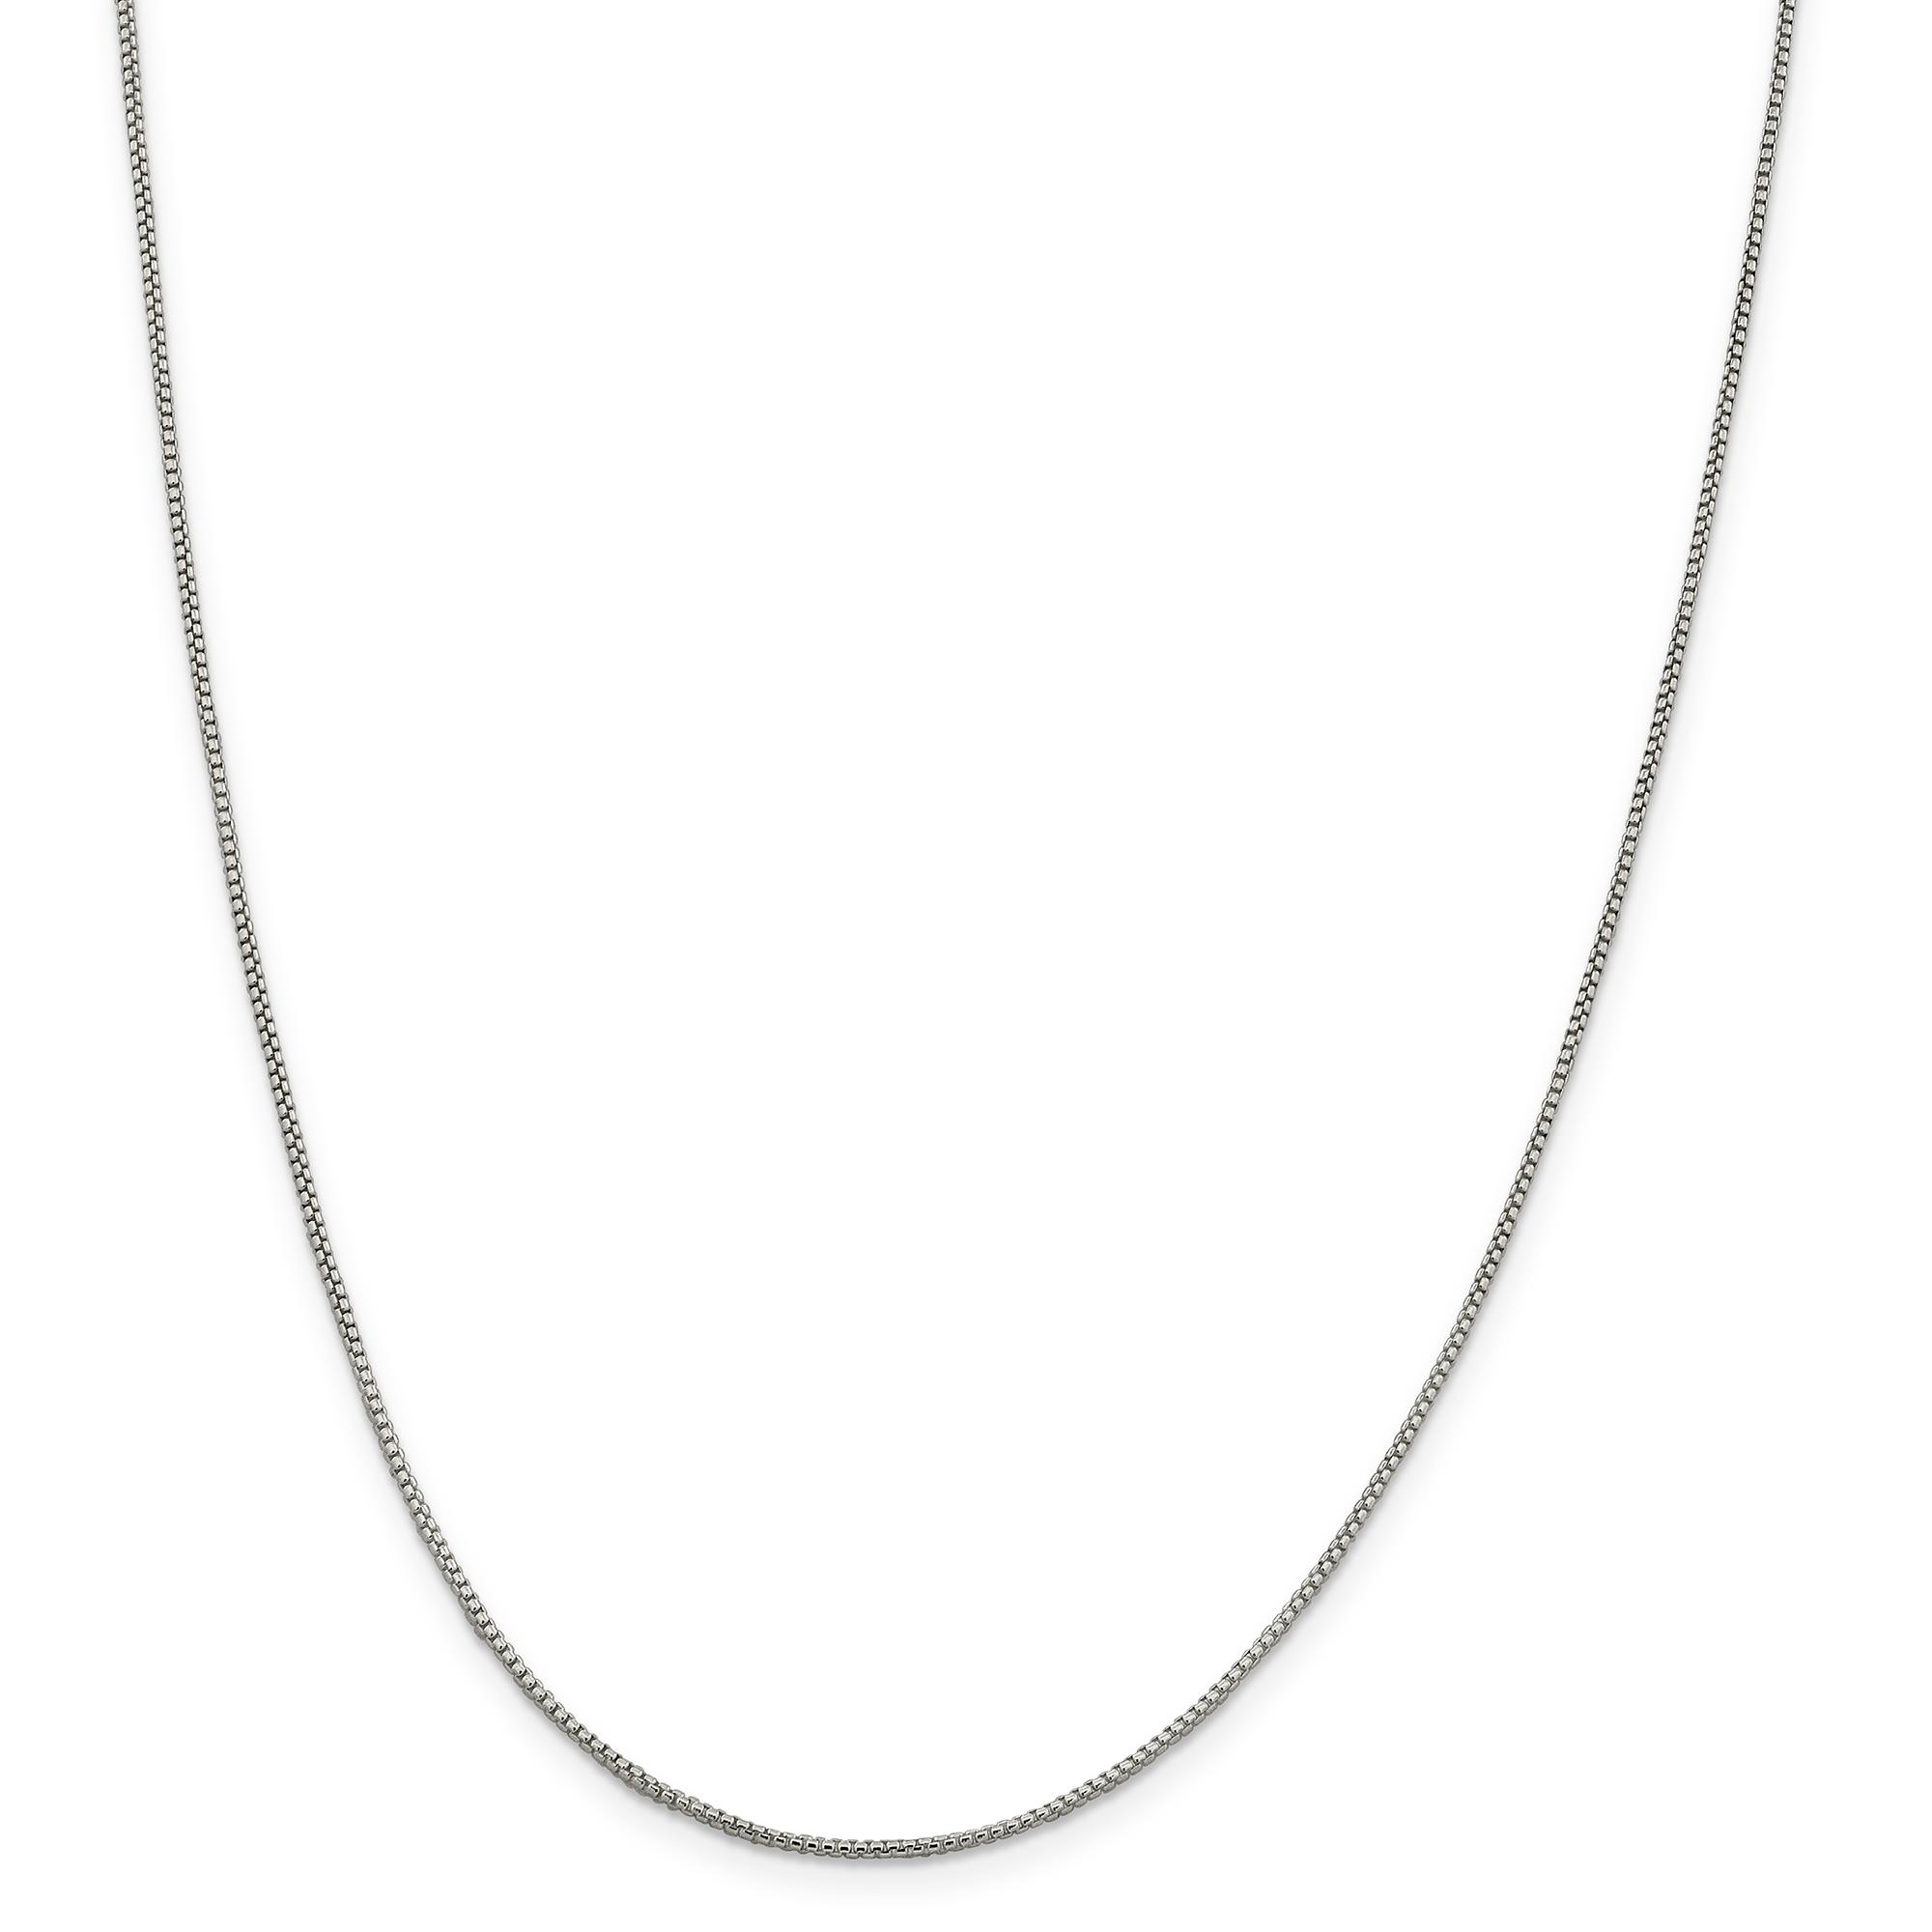 925 Sterling Silver 1.25mm Round Link Box Chain Necklace 24 Inch Pendant Charm Fine Jewelry Gifts For Women For Her - image 9 of 9